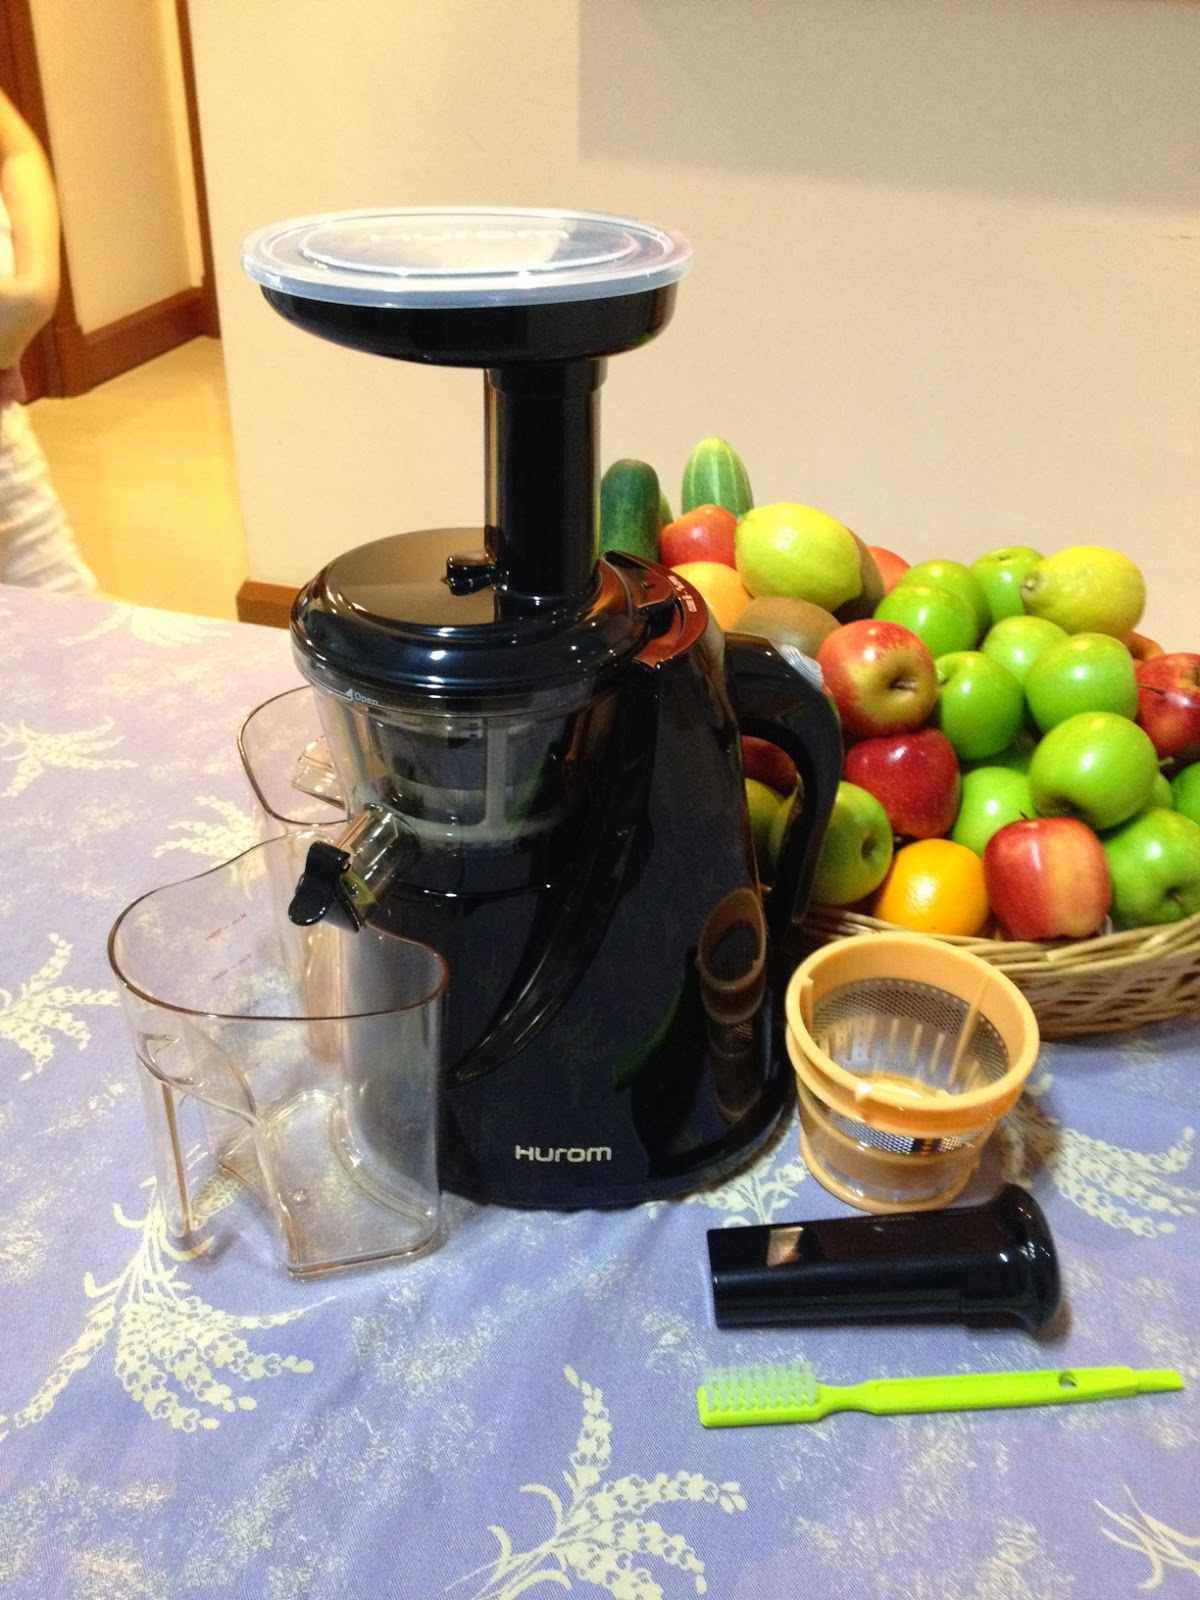 Expatriate in KL: Hurom Juicer & Juicing: Lose Weight in a Healthy Way